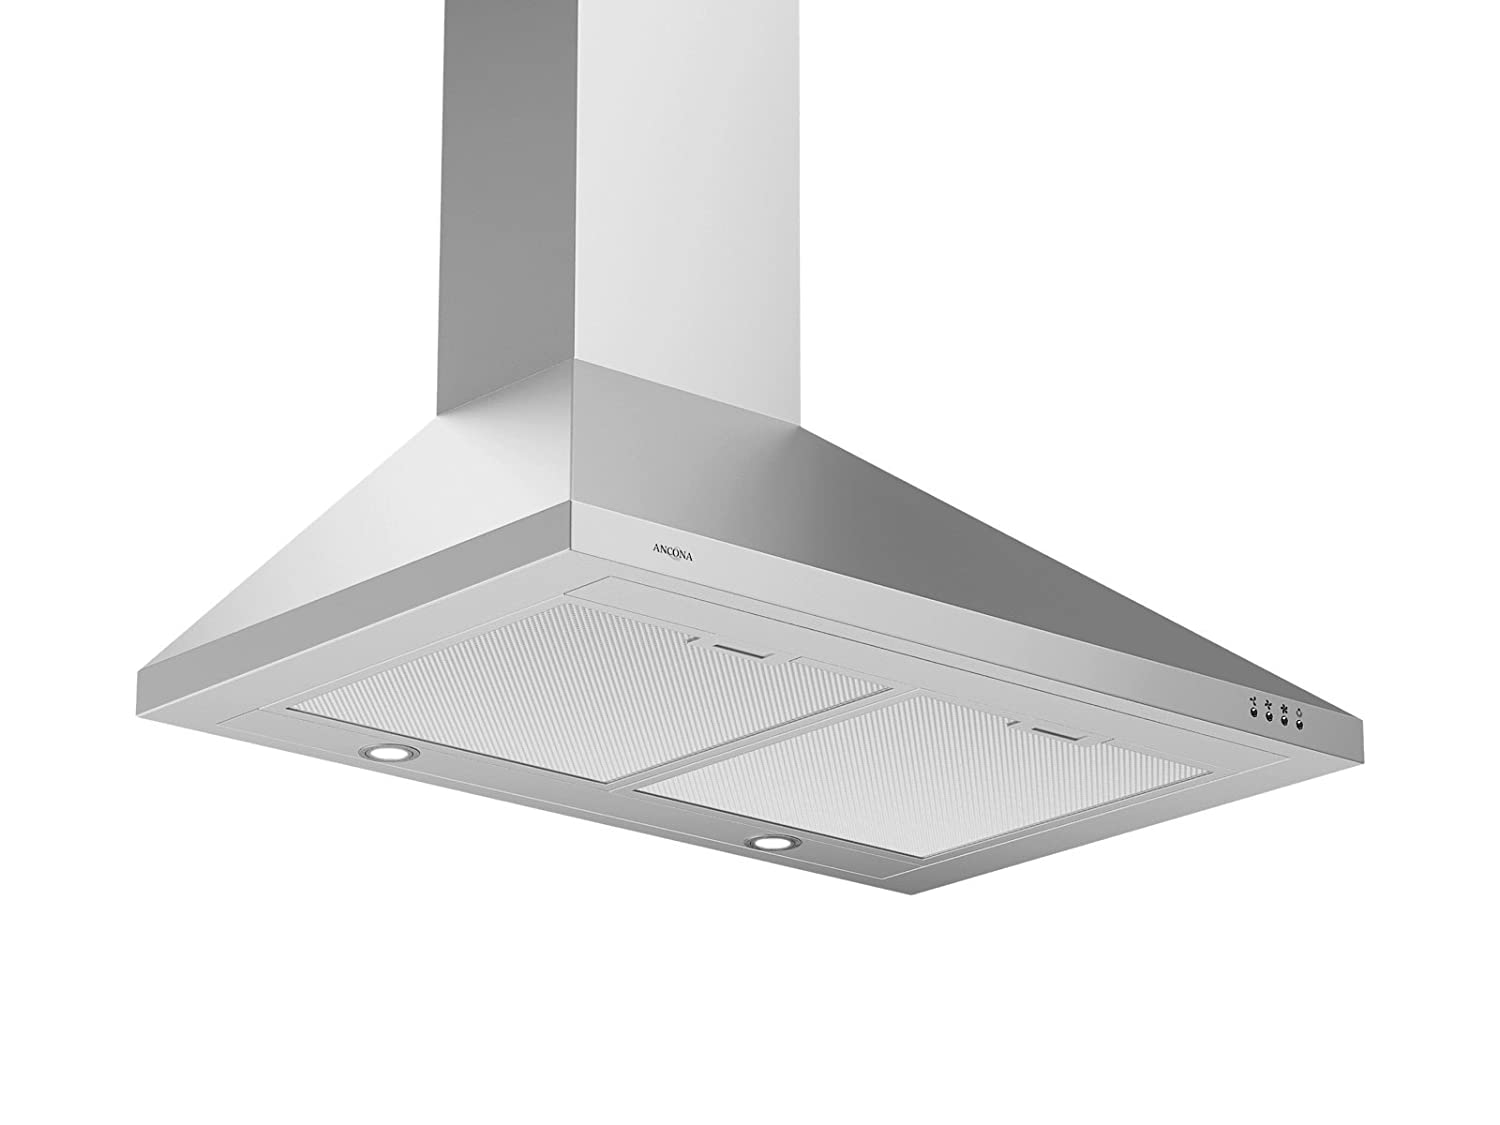 Ancona WPP430 Wall-Mounted Classic Pyramid Style Convertible Range Hood, 30-Inch, Stainless Steel